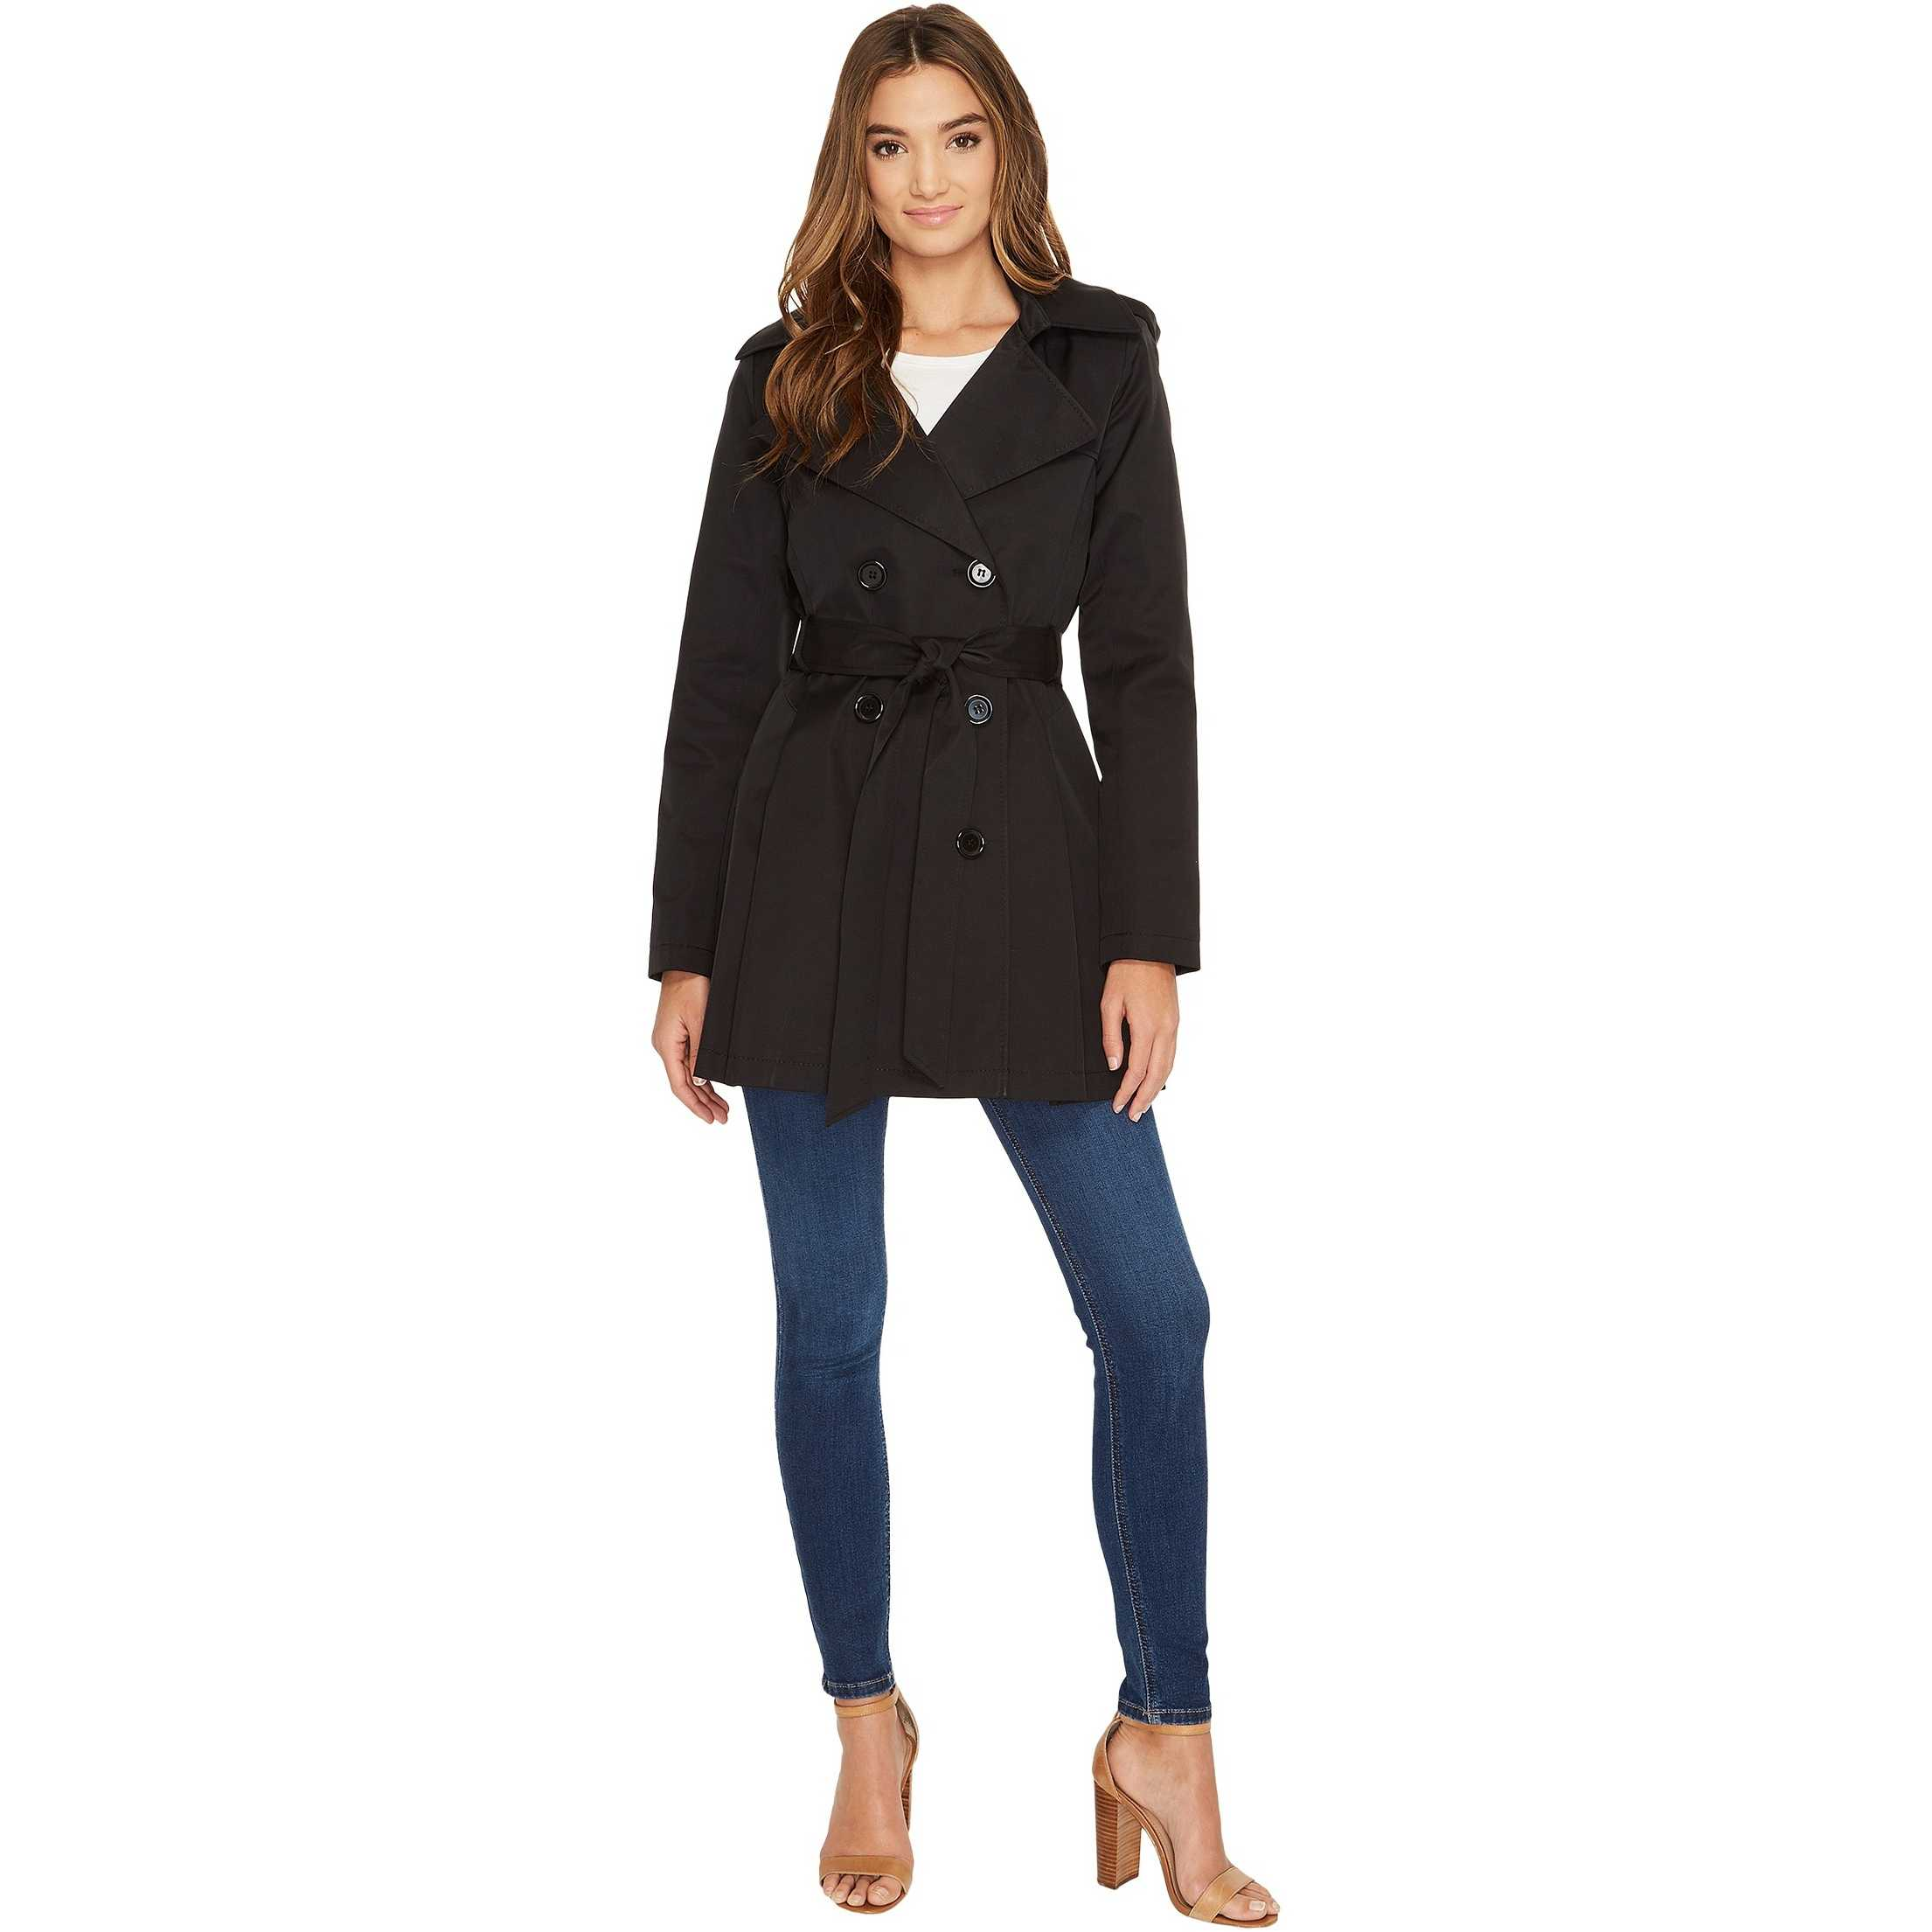 Via Spiga Double Breasted Trench Coat Black pentru dama